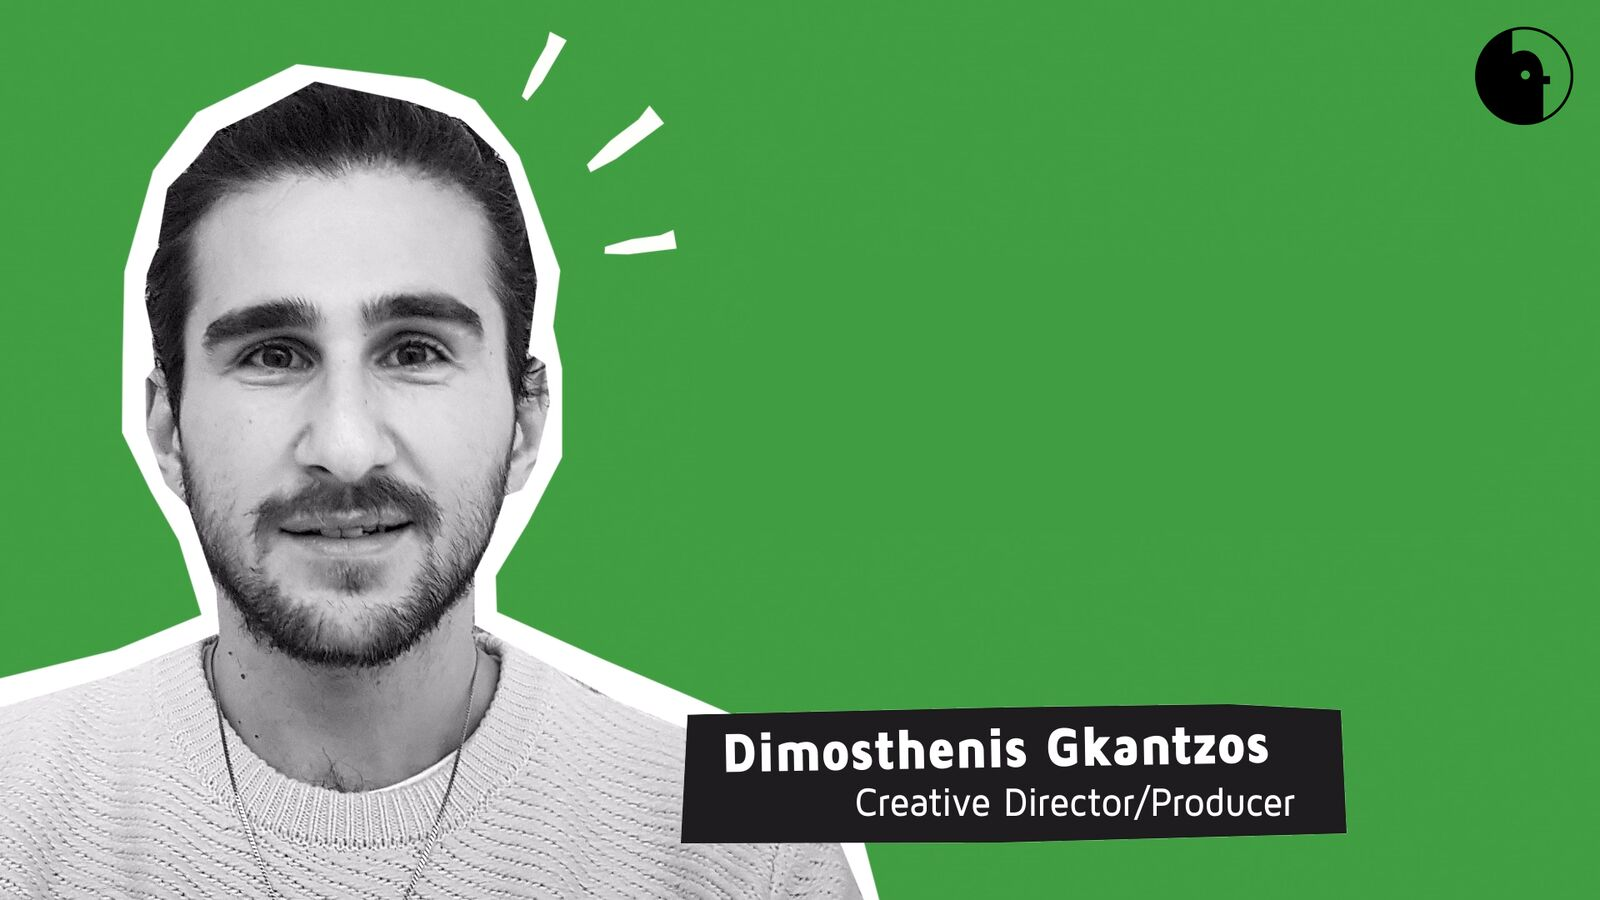 4 Questions with Dimosthenis Gkantzos